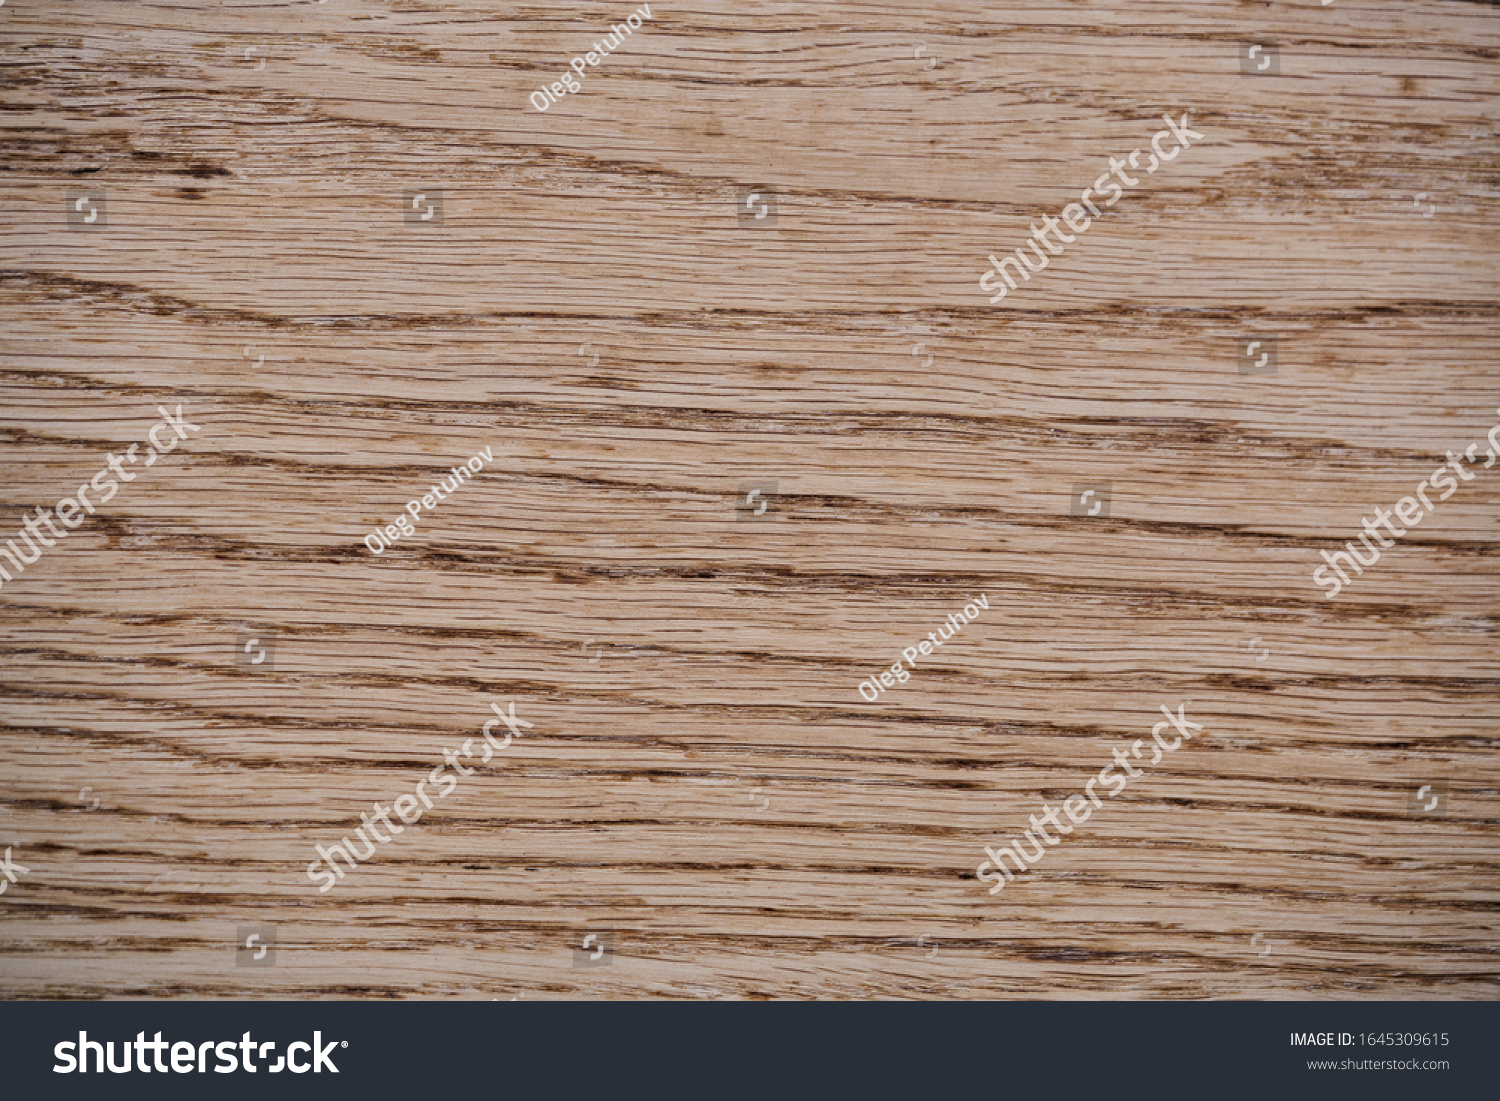 Old grunge dark textured wooden background,The surface of the brown wood texture - Image. #1645309615